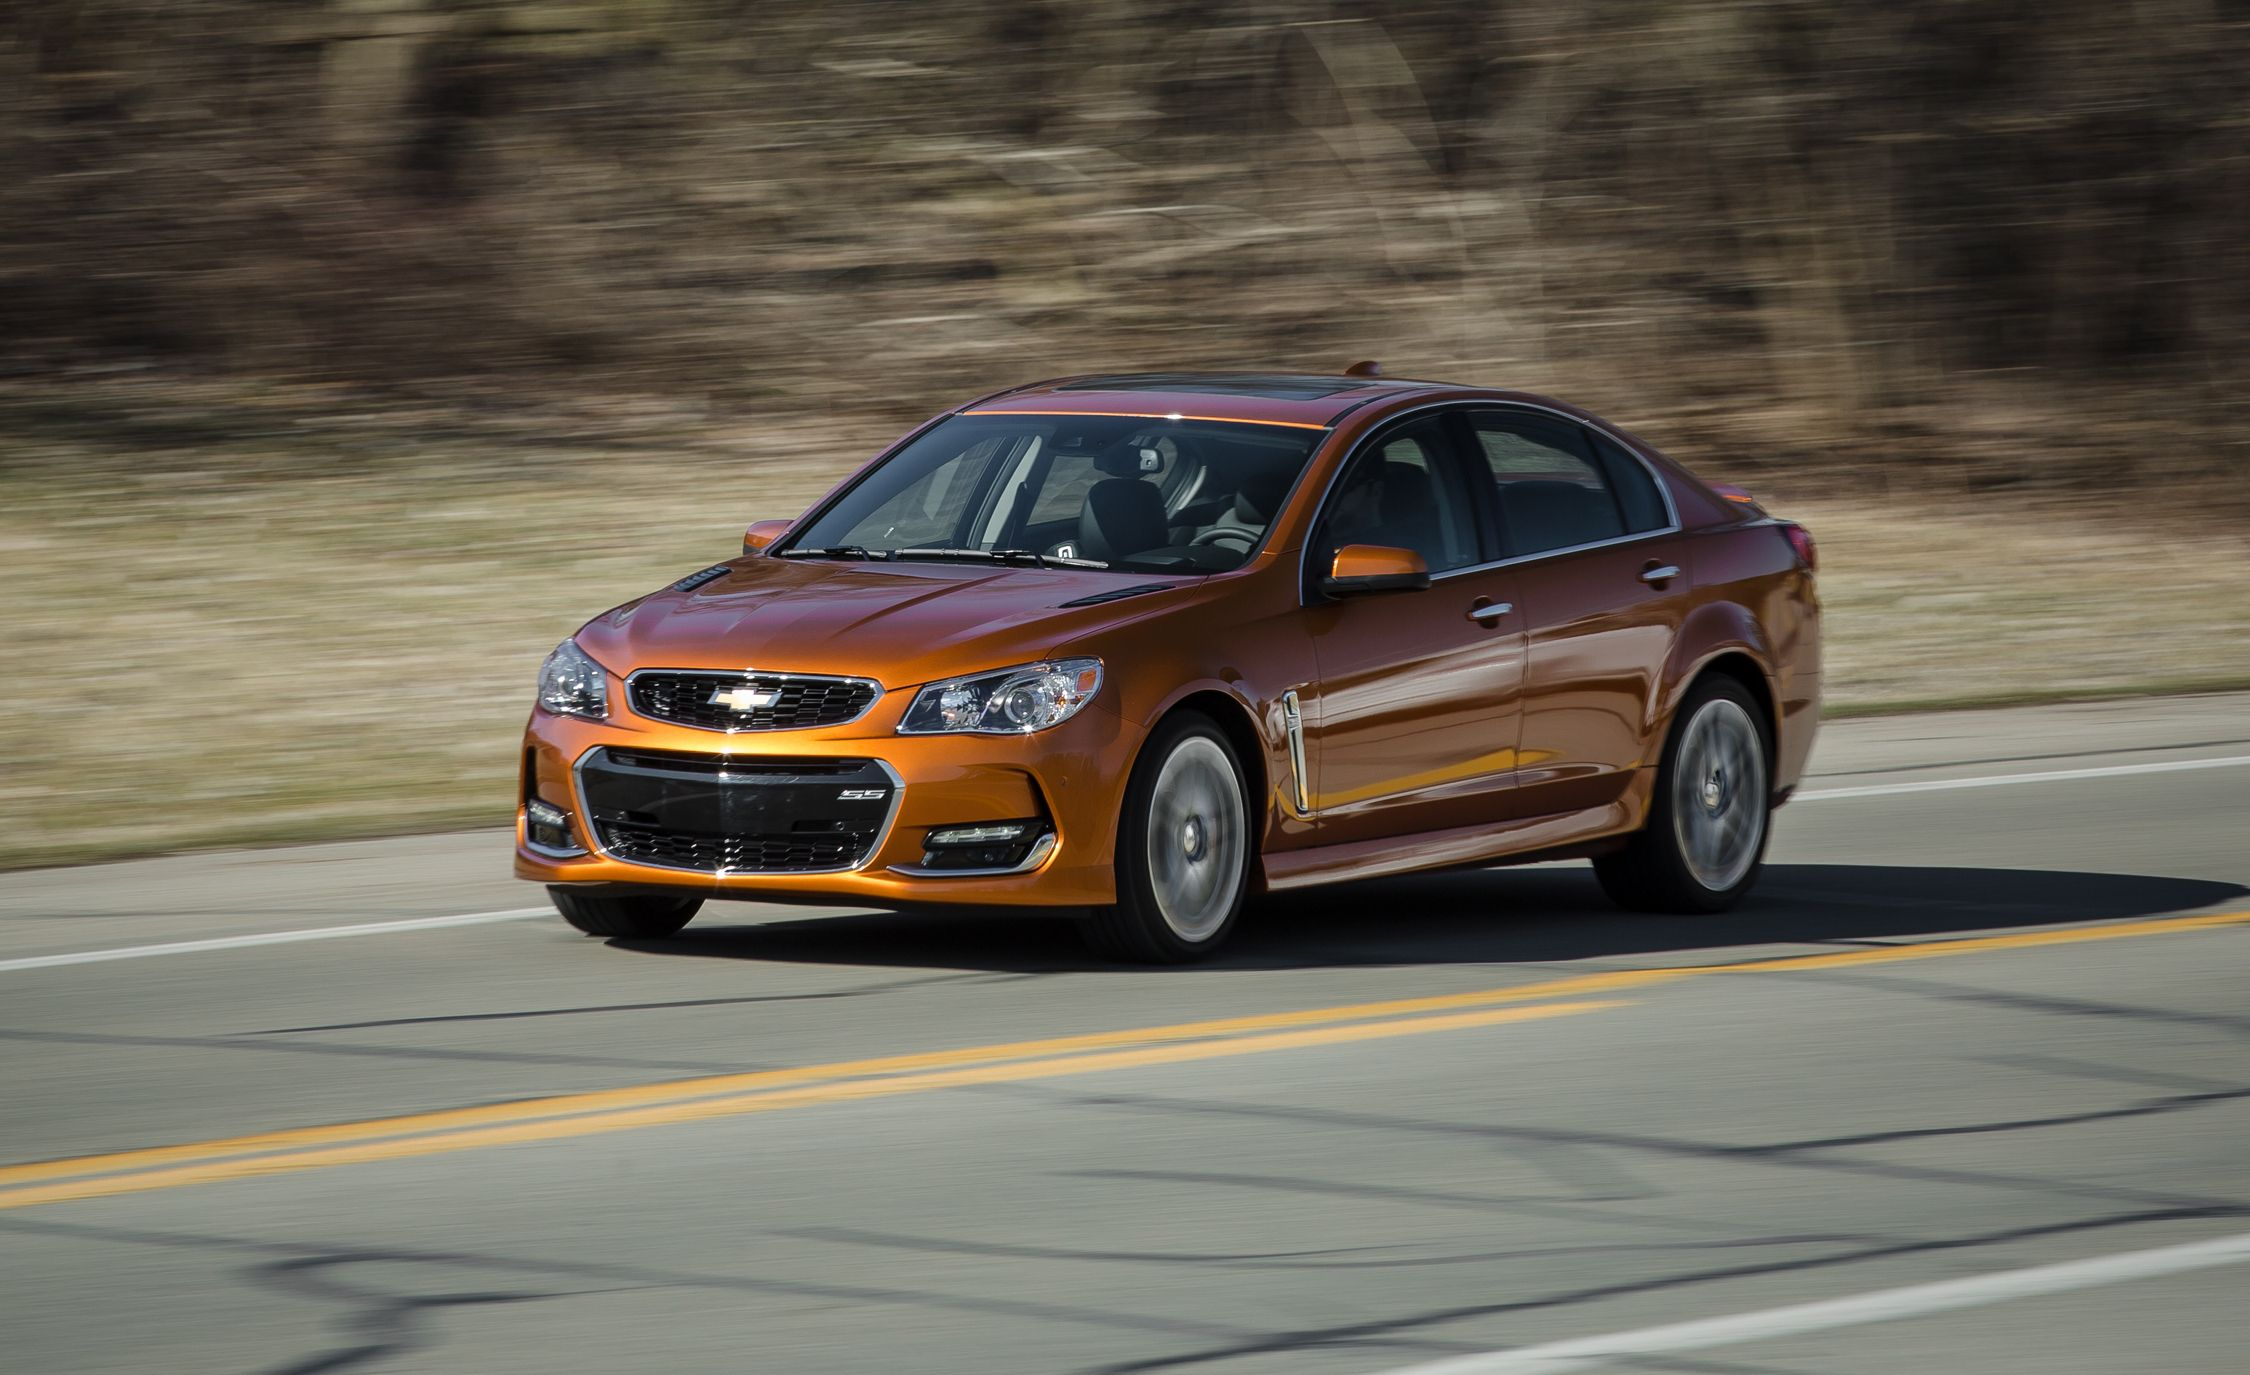 Malibu Ss 2018 >> Chevrolet SS Reviews | Chevrolet SS Price, Photos, and Specs | Car and Driver